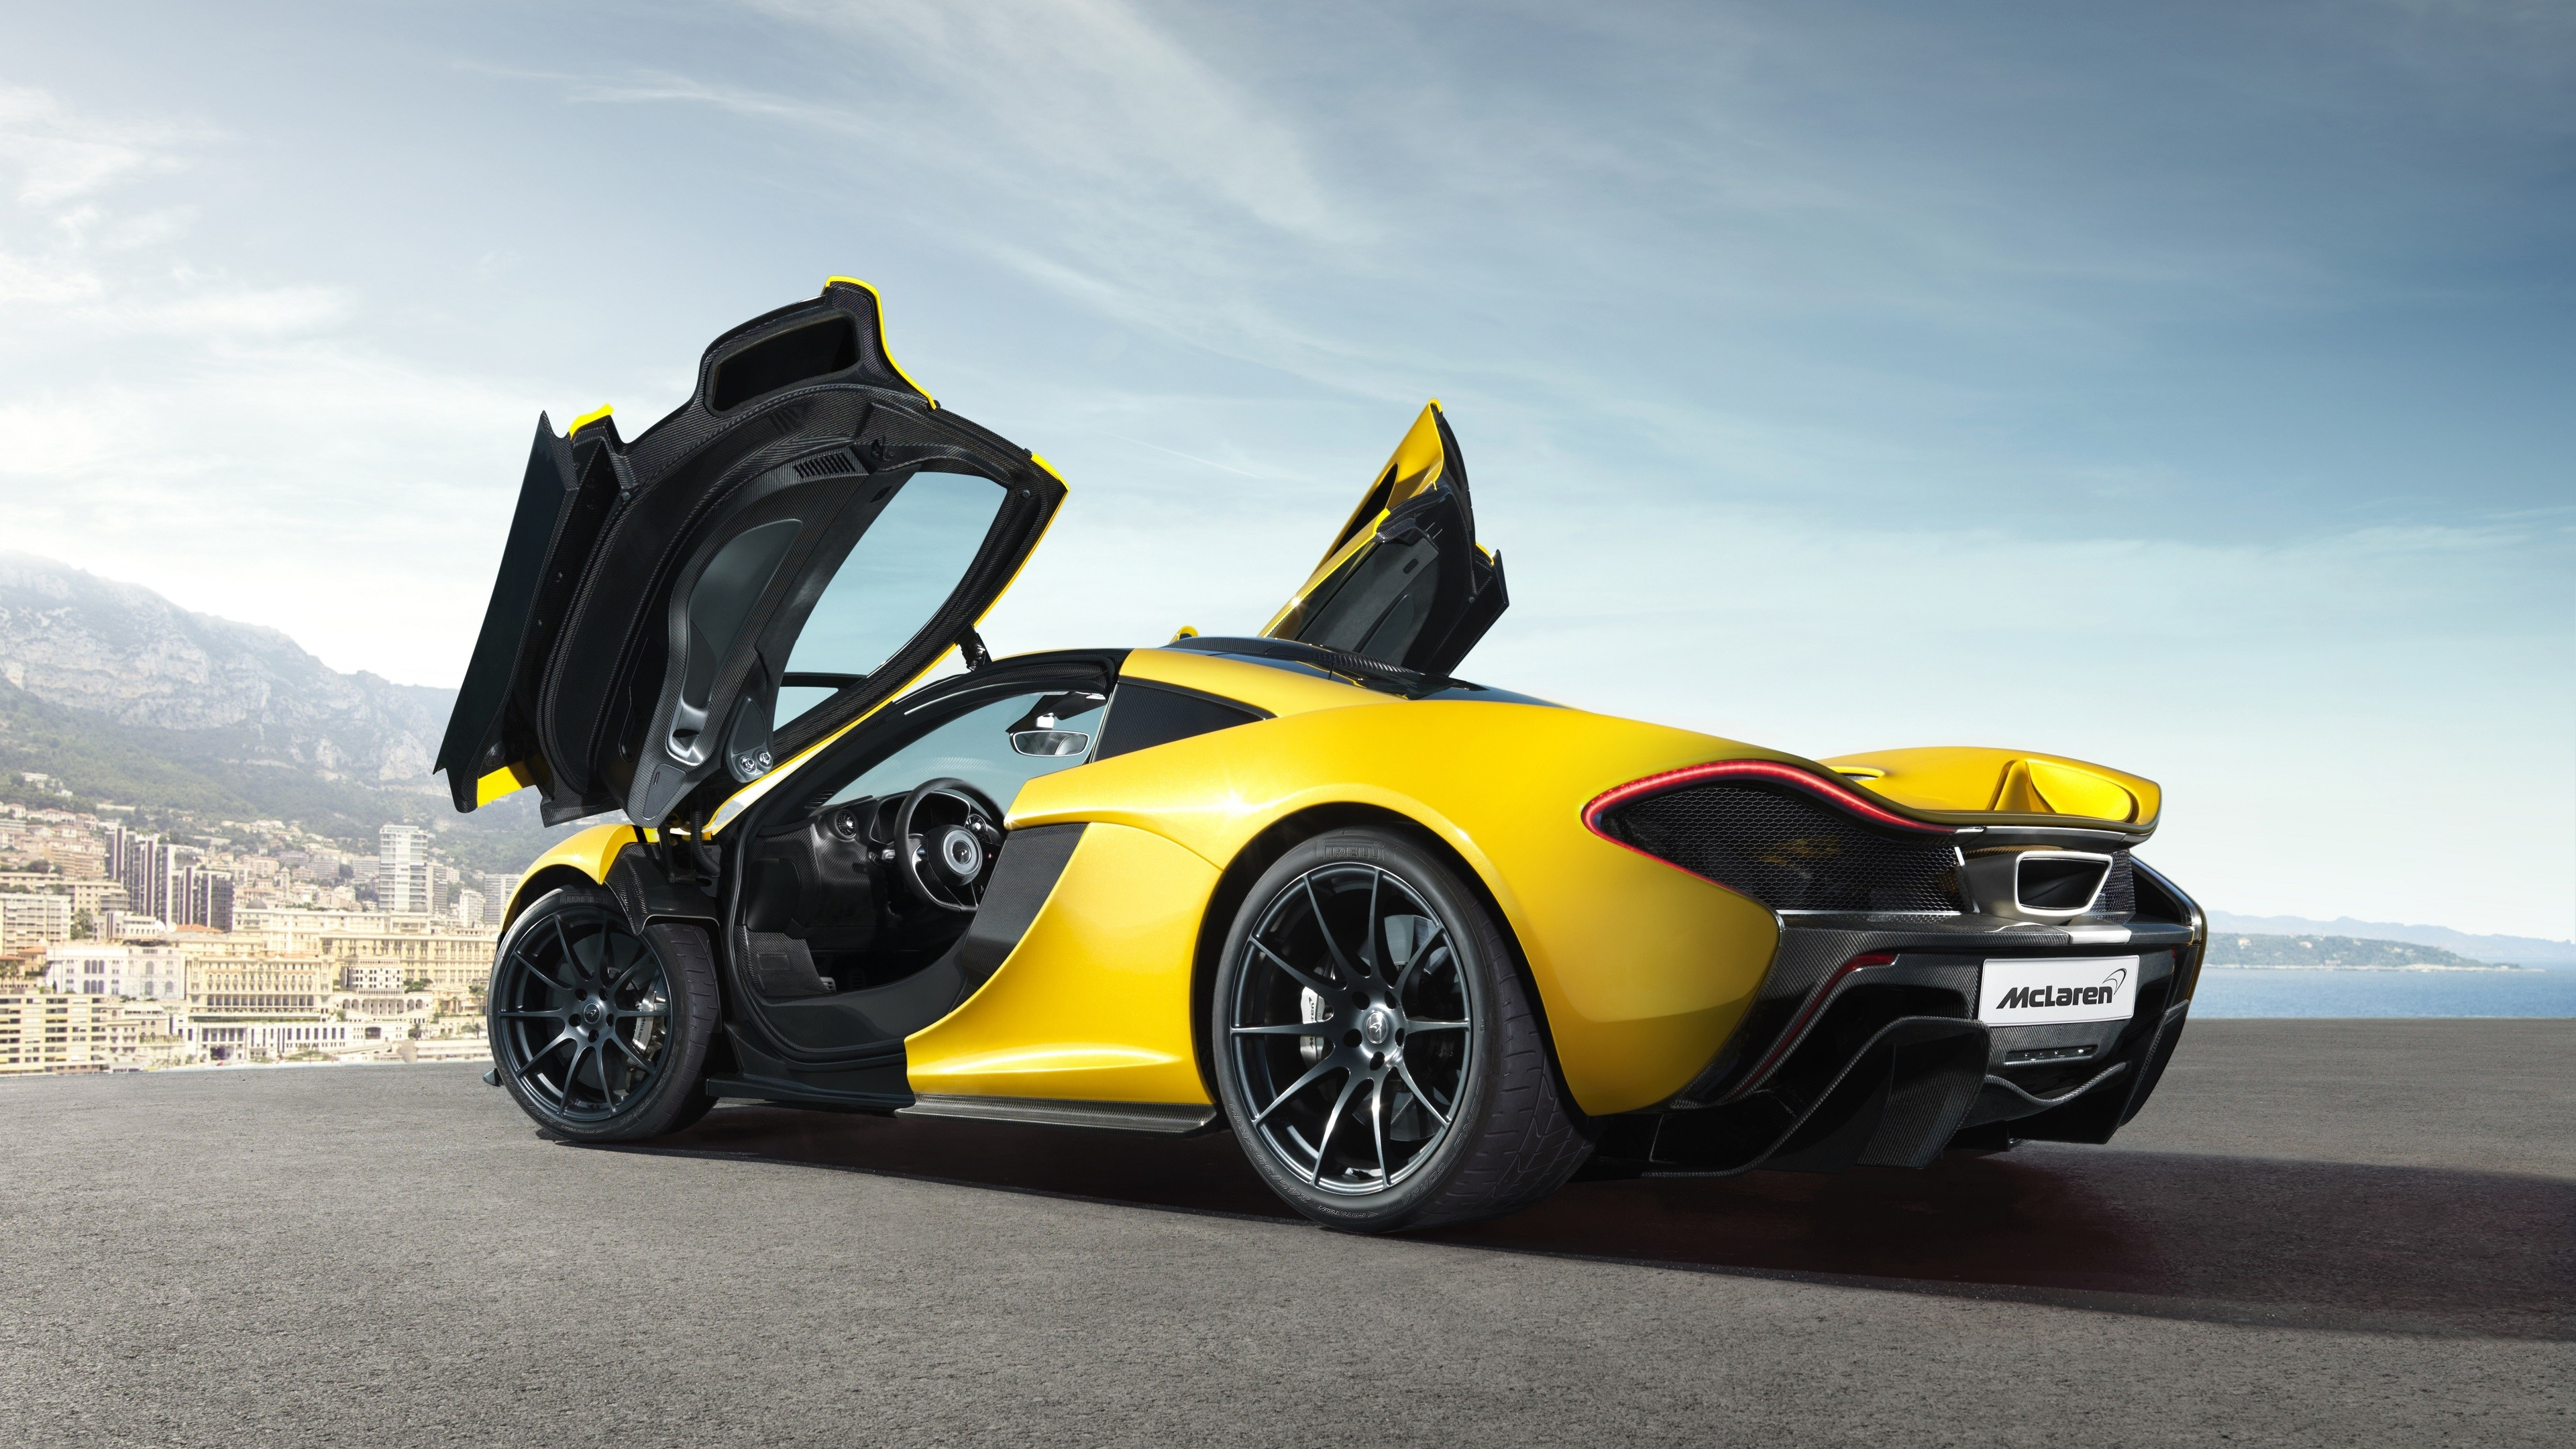 617 yellow car hd wallpapers   background images - wallpaper abyss